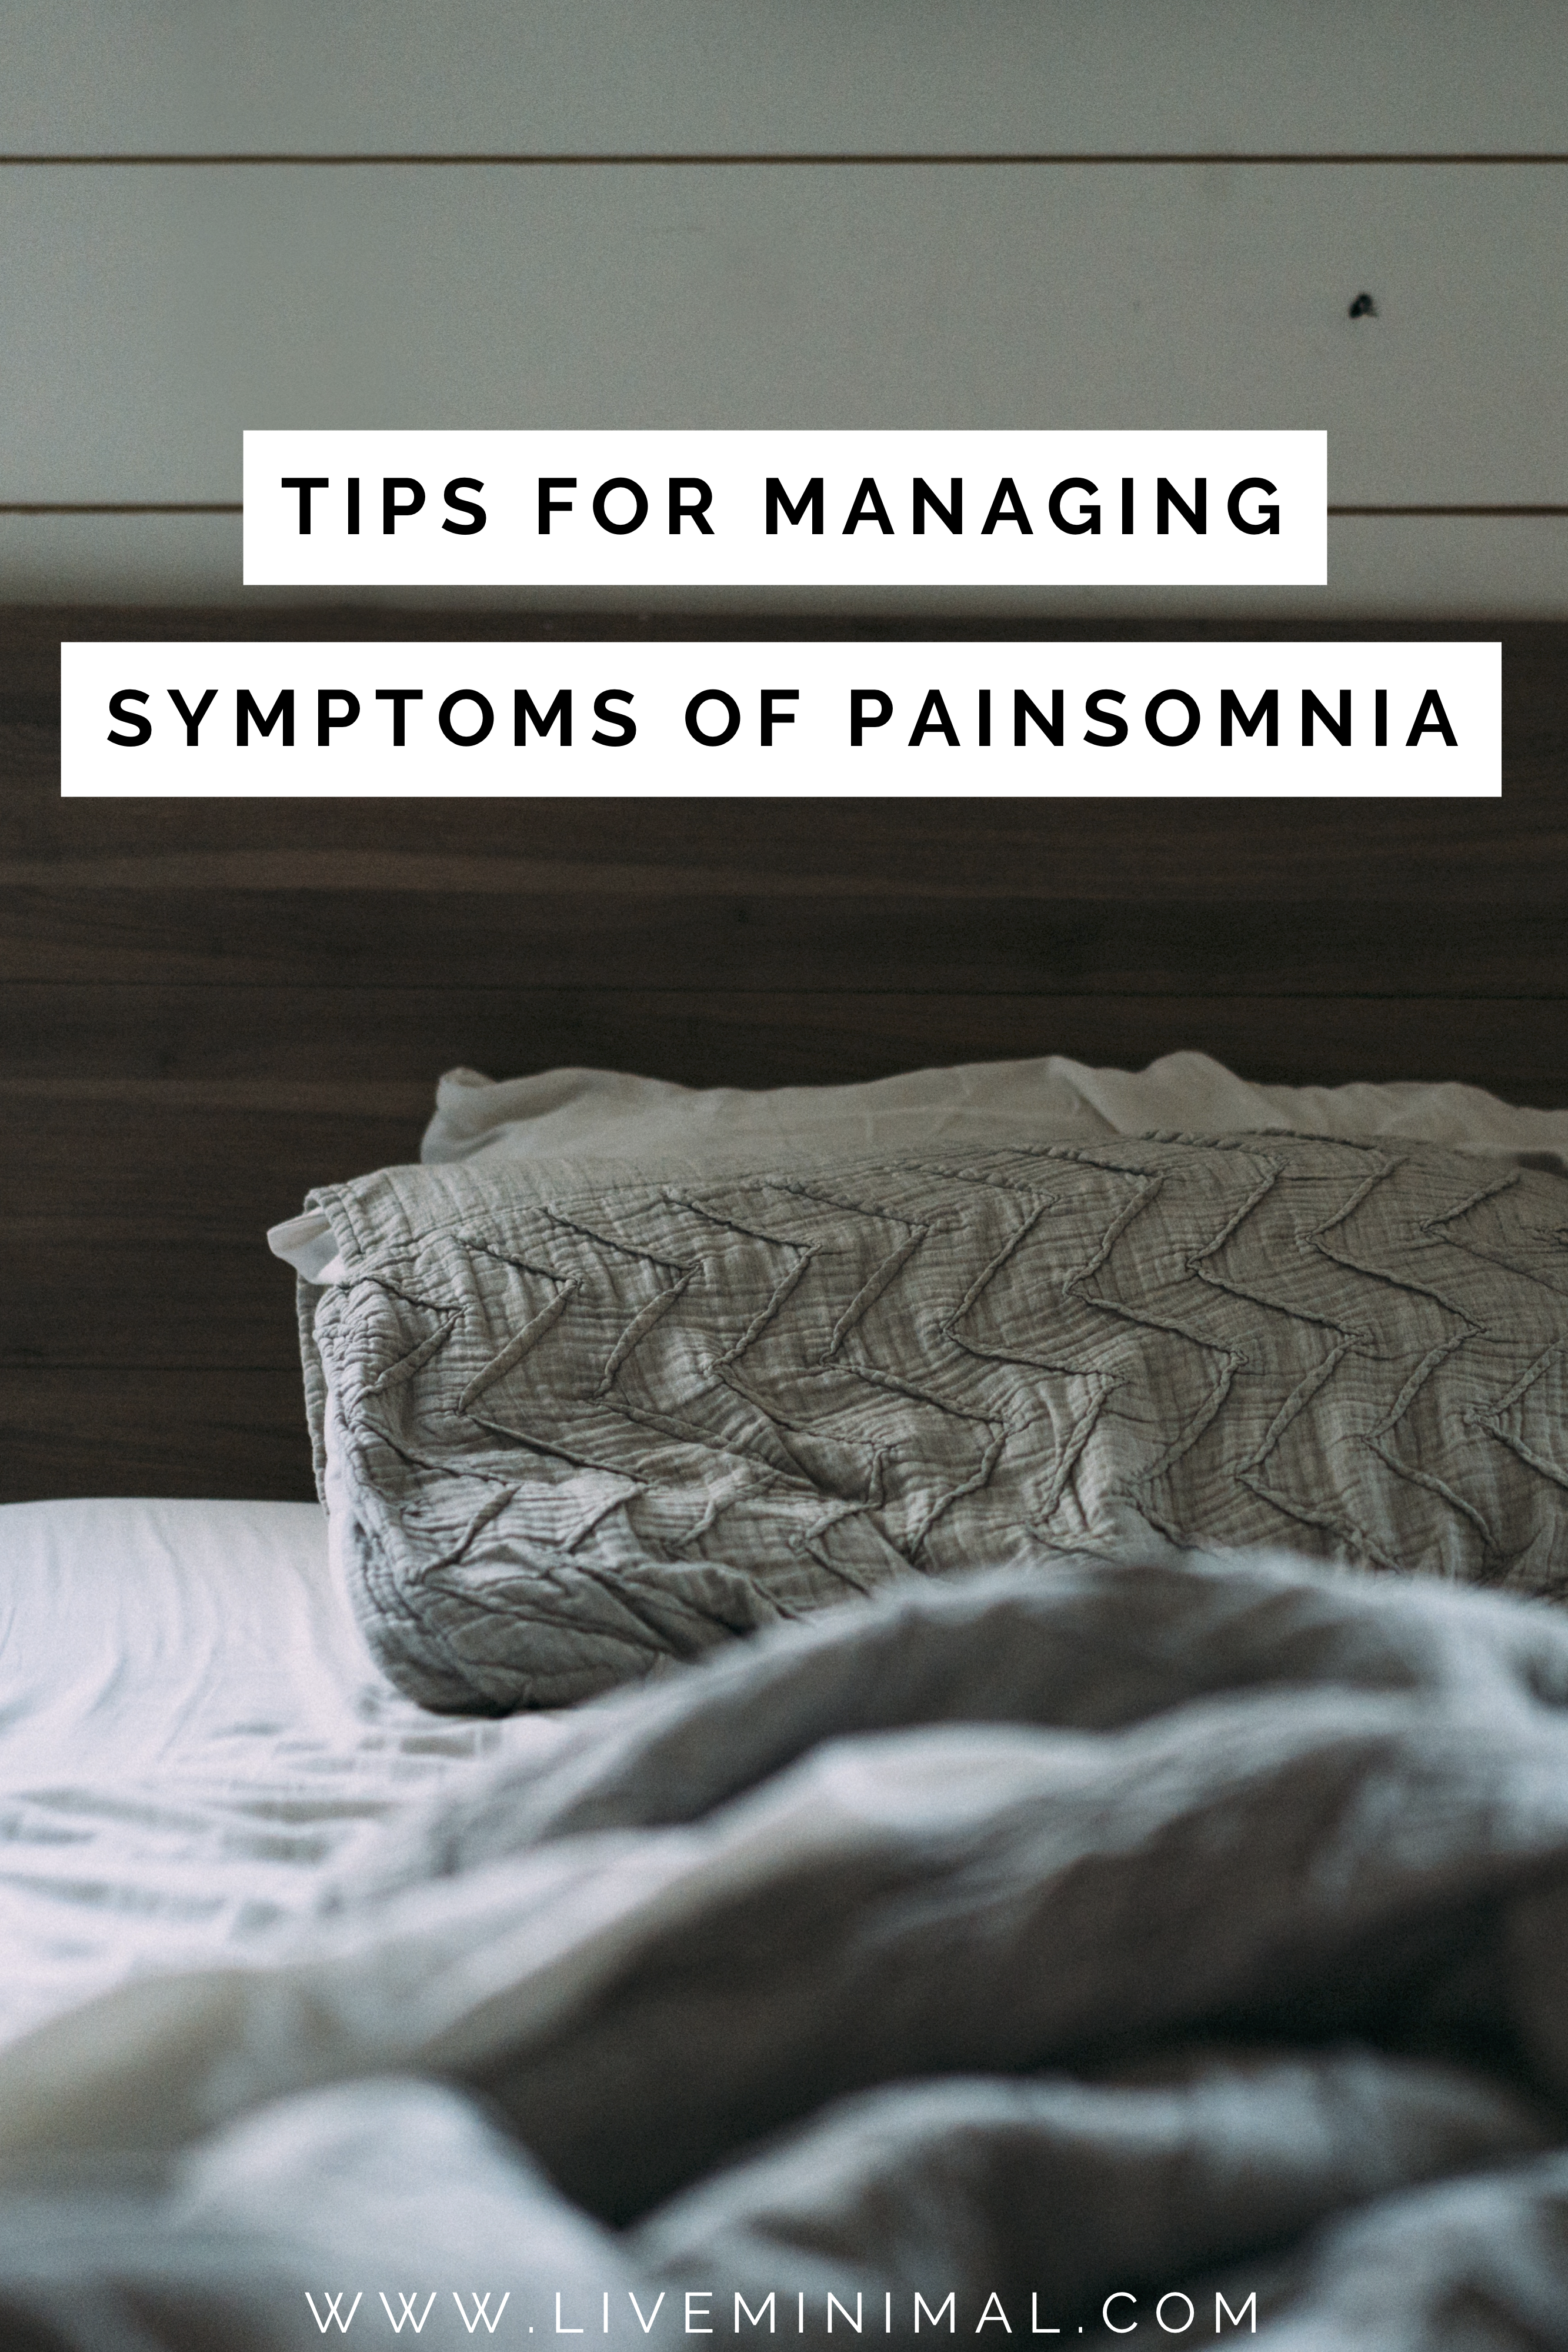 Tips for managing symptoms of painsomnia